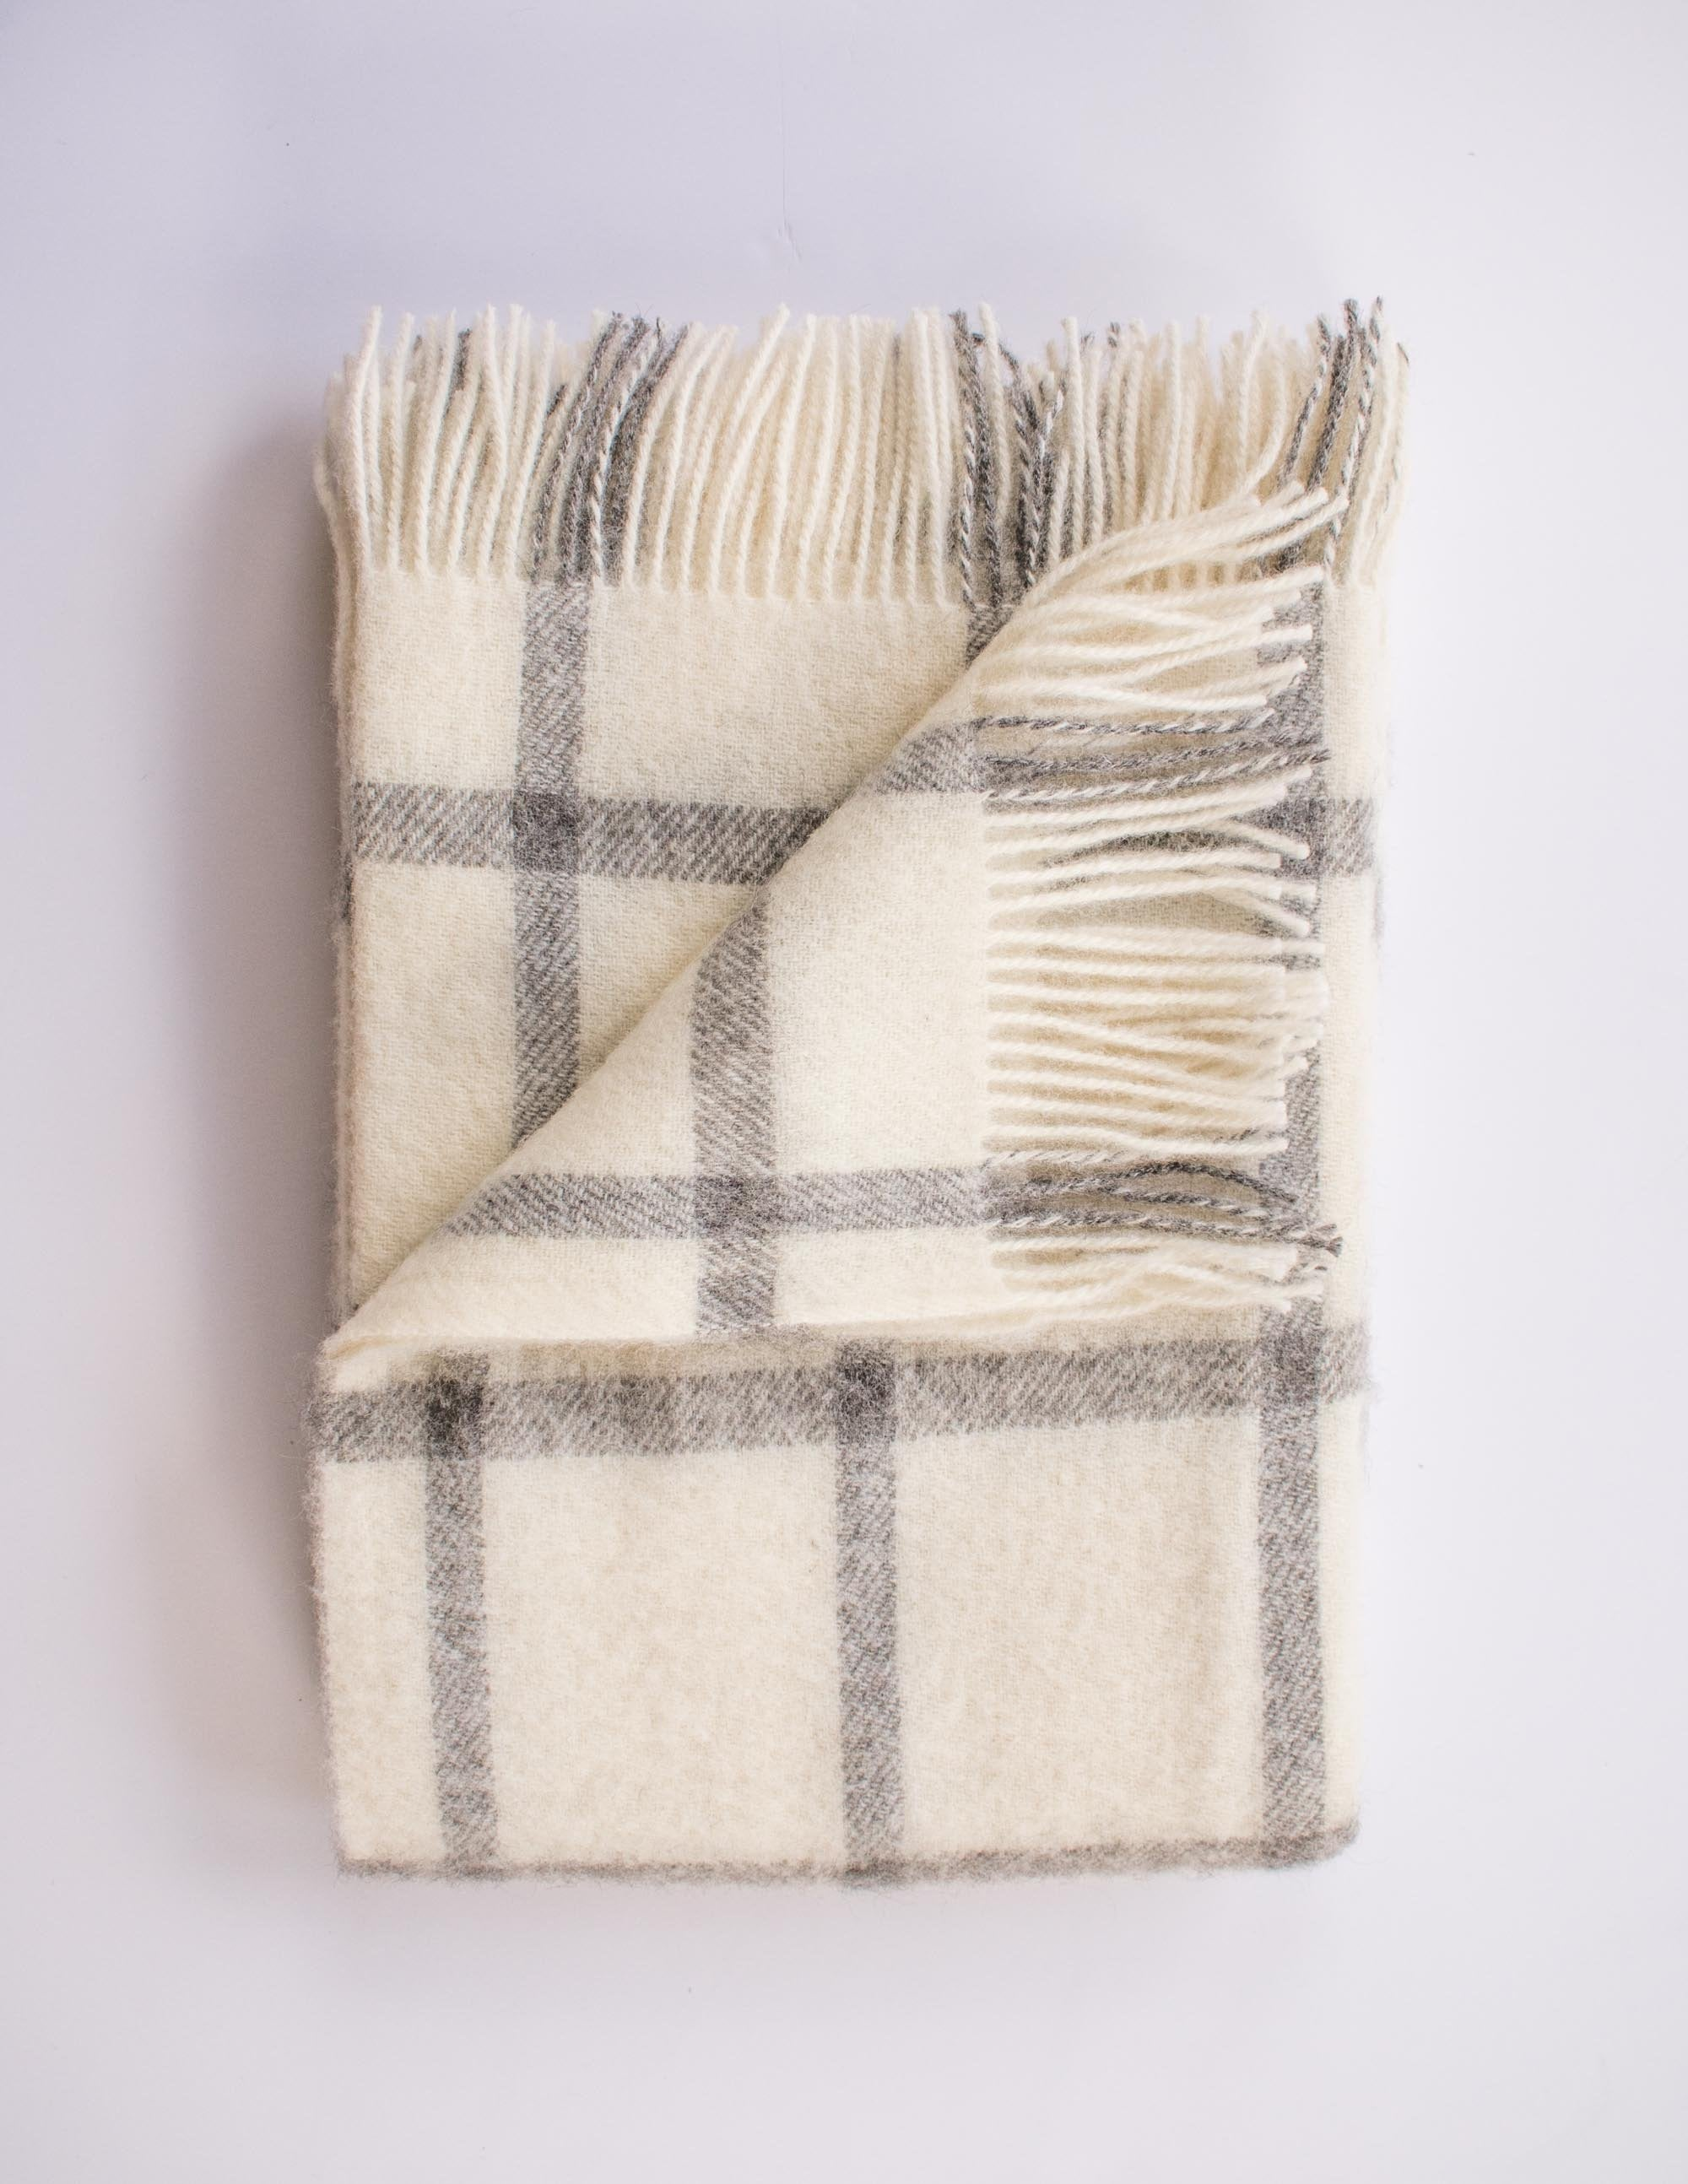 Soft white and grey checker patterned merino throw blanket